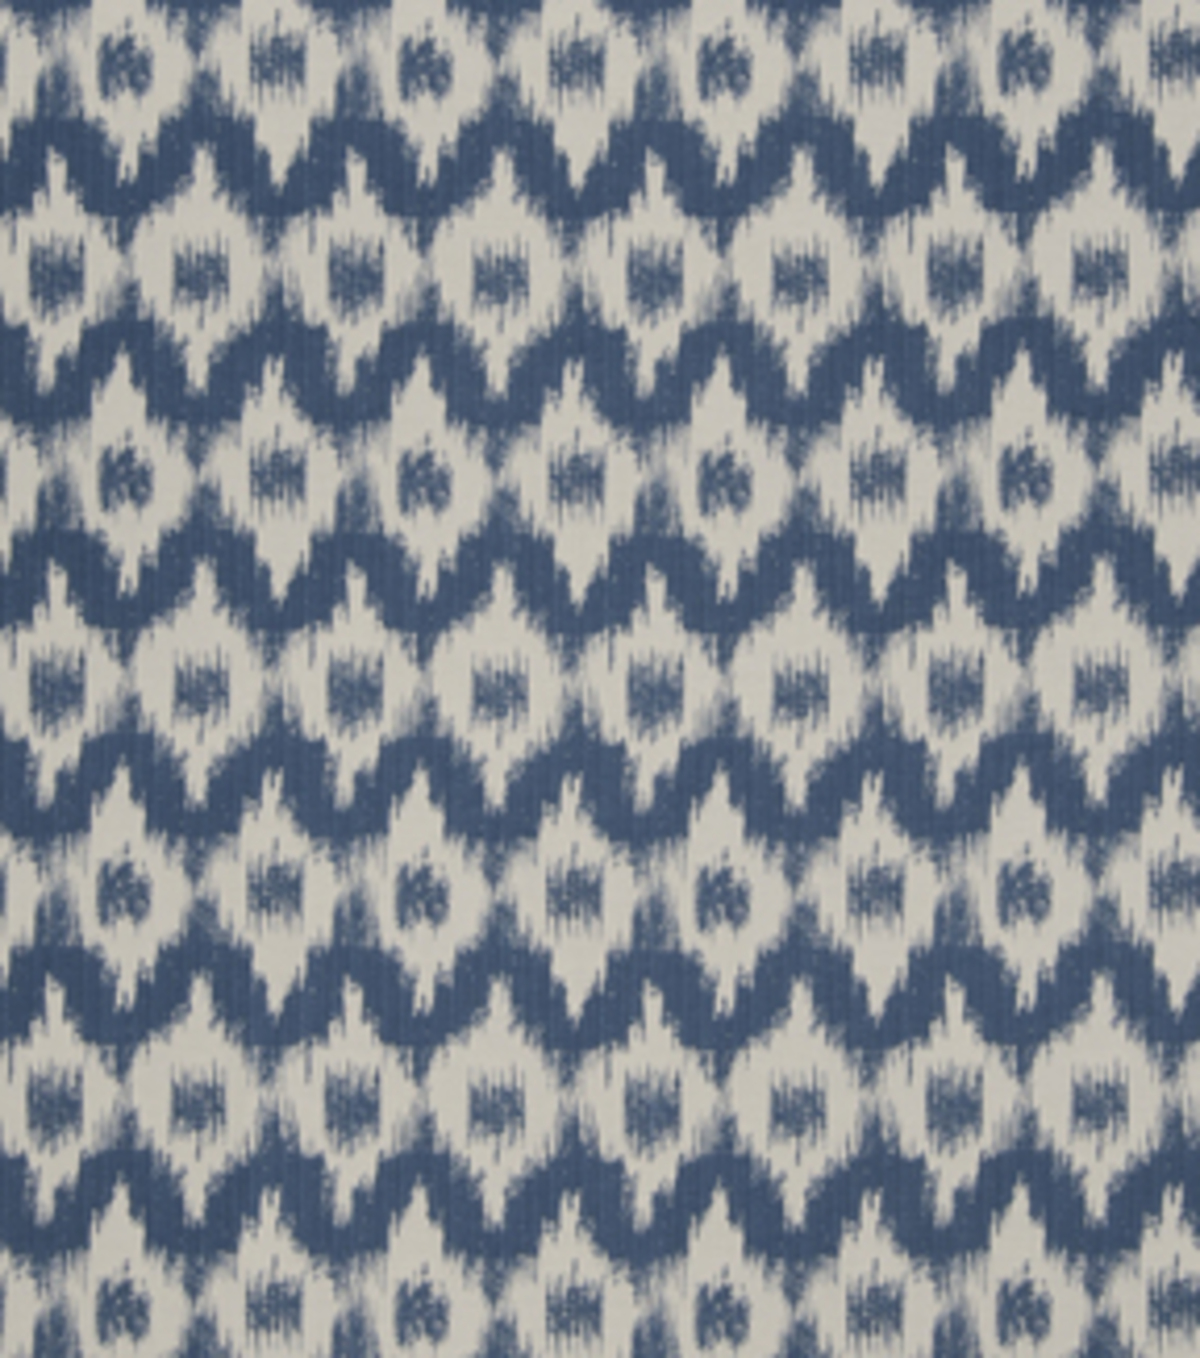 Home Decor 8\u0022x8\u0022 Fabric Swatch-French General Cecilia Indigo